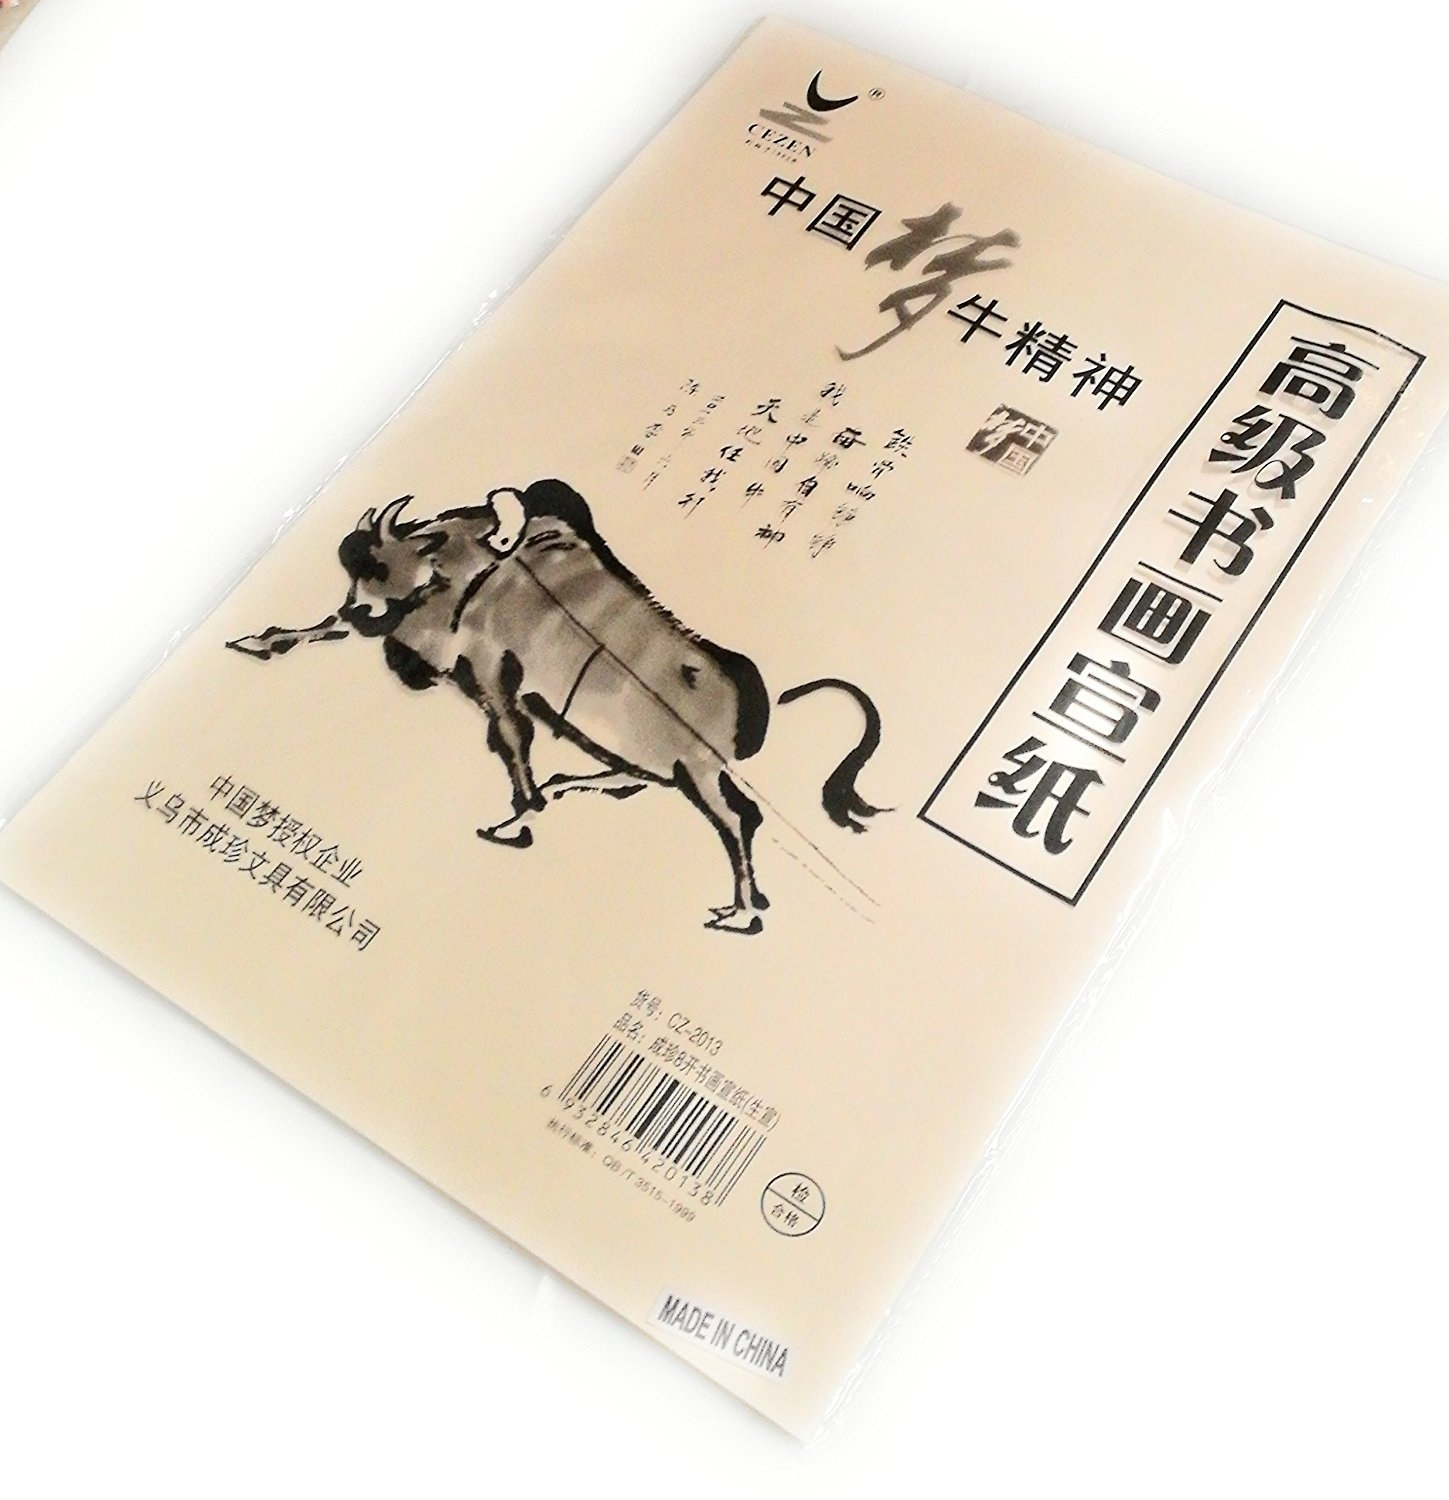 THY COLLECTIBLE Chinese Calligraphy Brush Ink Writing Sumi Paper / Xuan Paper / Rice Paper, 20 x 14.5 Inch